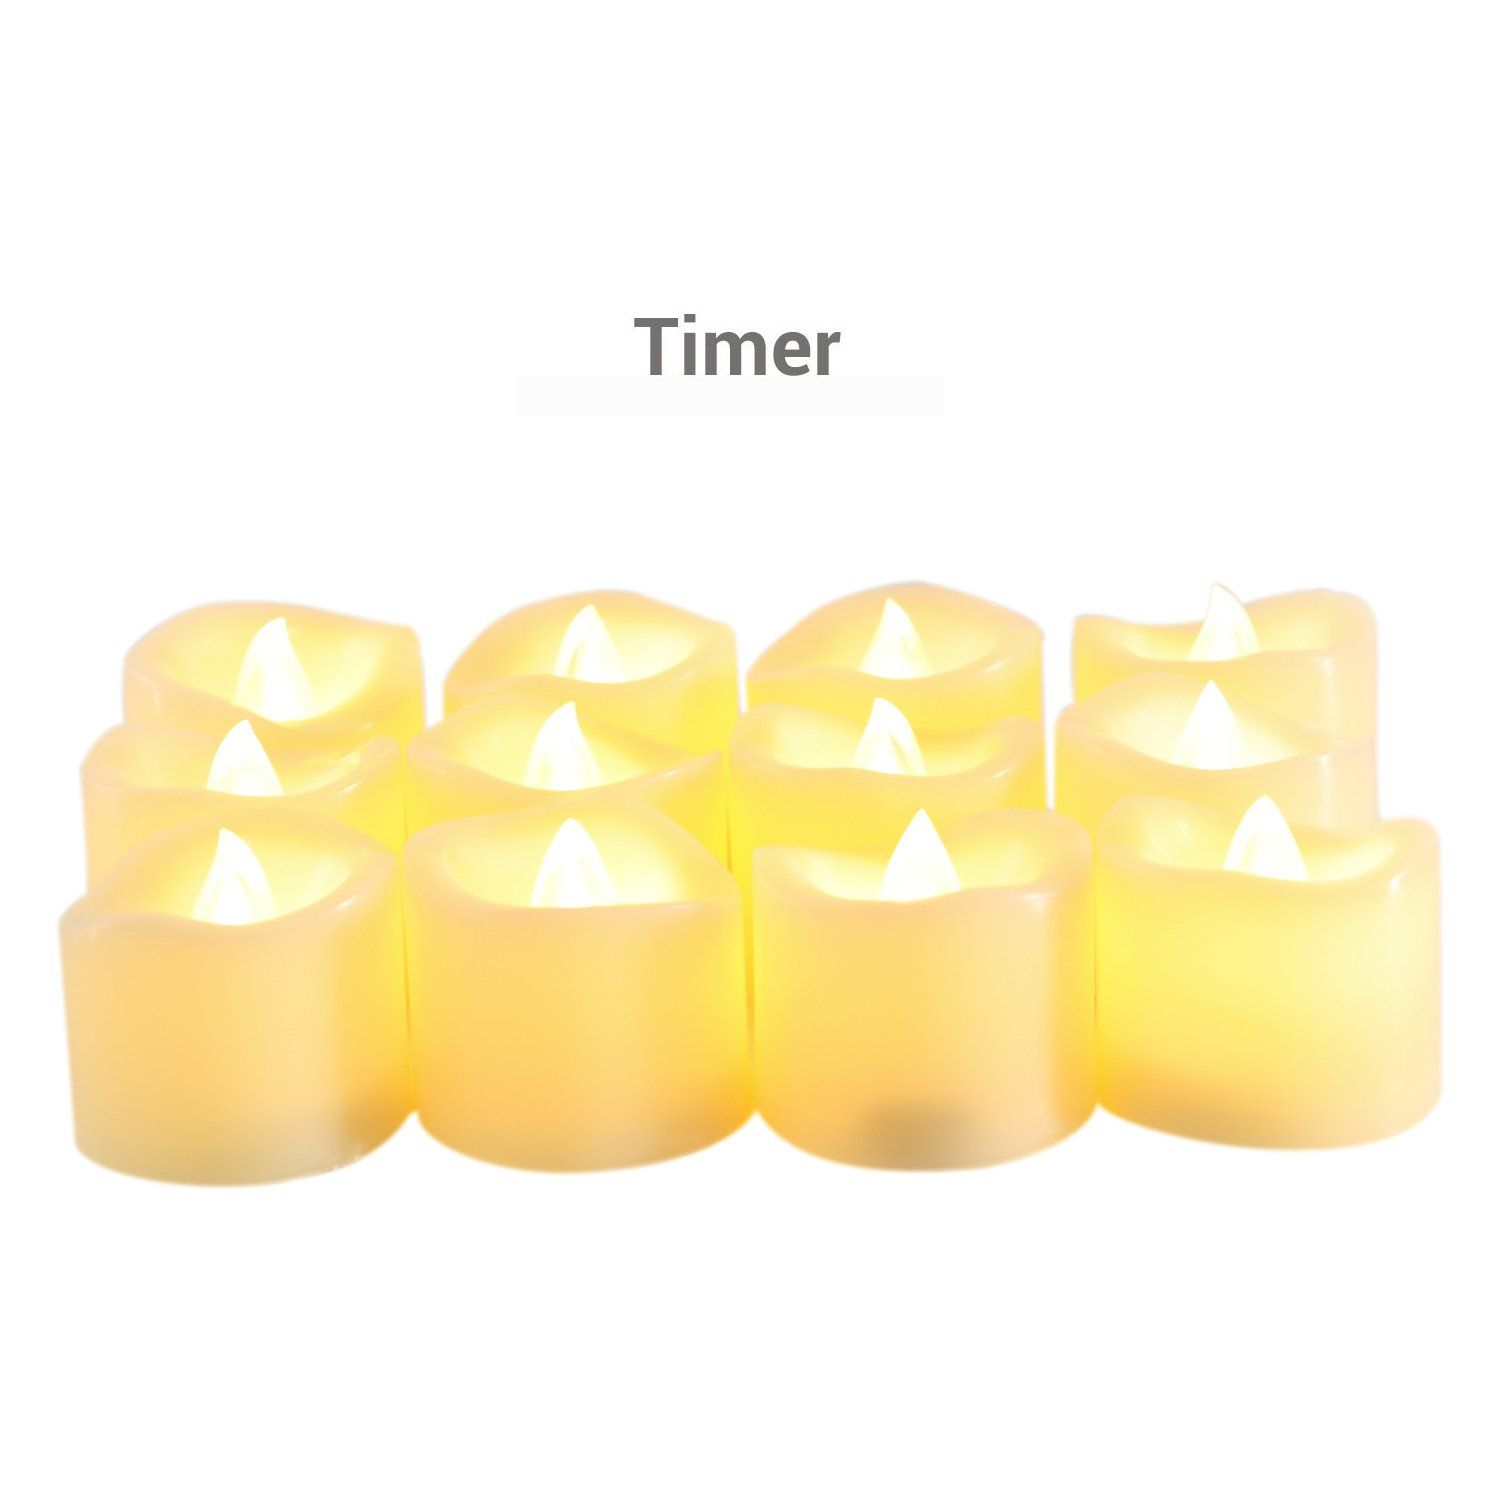 Flameless Votive Candles Candle Choice Flameless Votive Candles  Batteryoperated Led